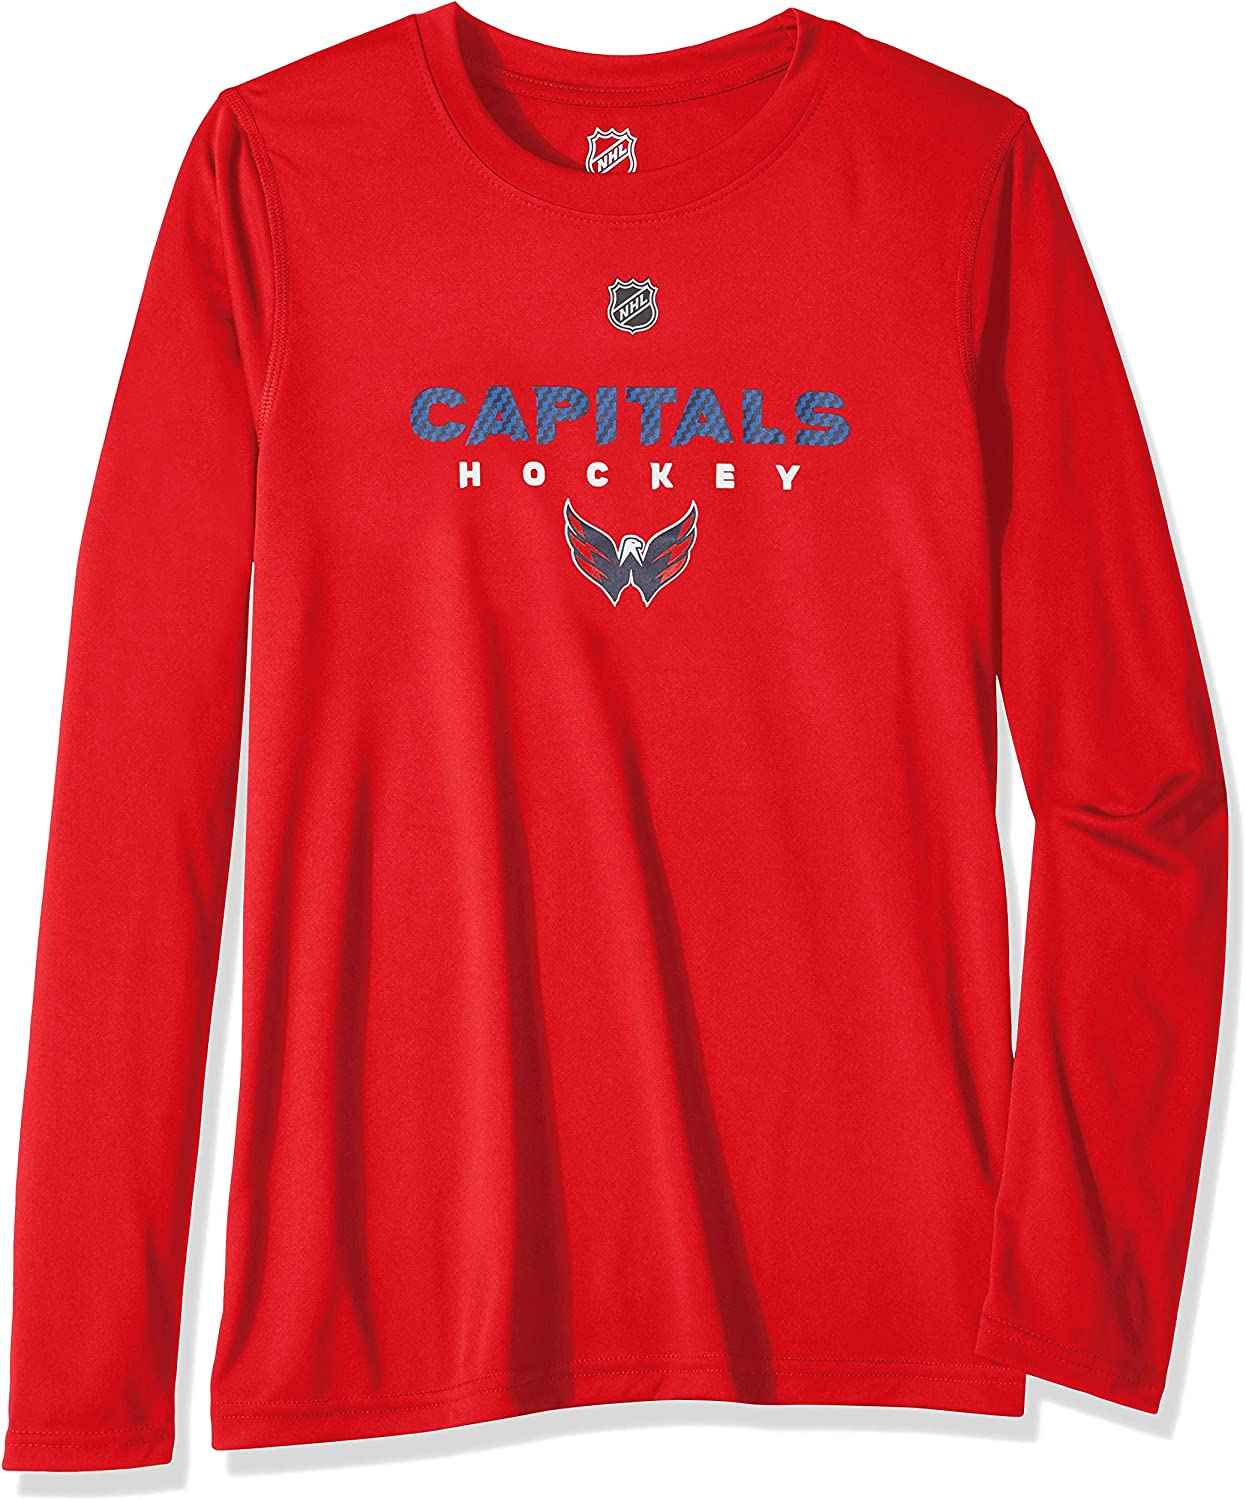 NHL by Outerstuff Youth Boys Hyper Long Sleeve Performance Tee